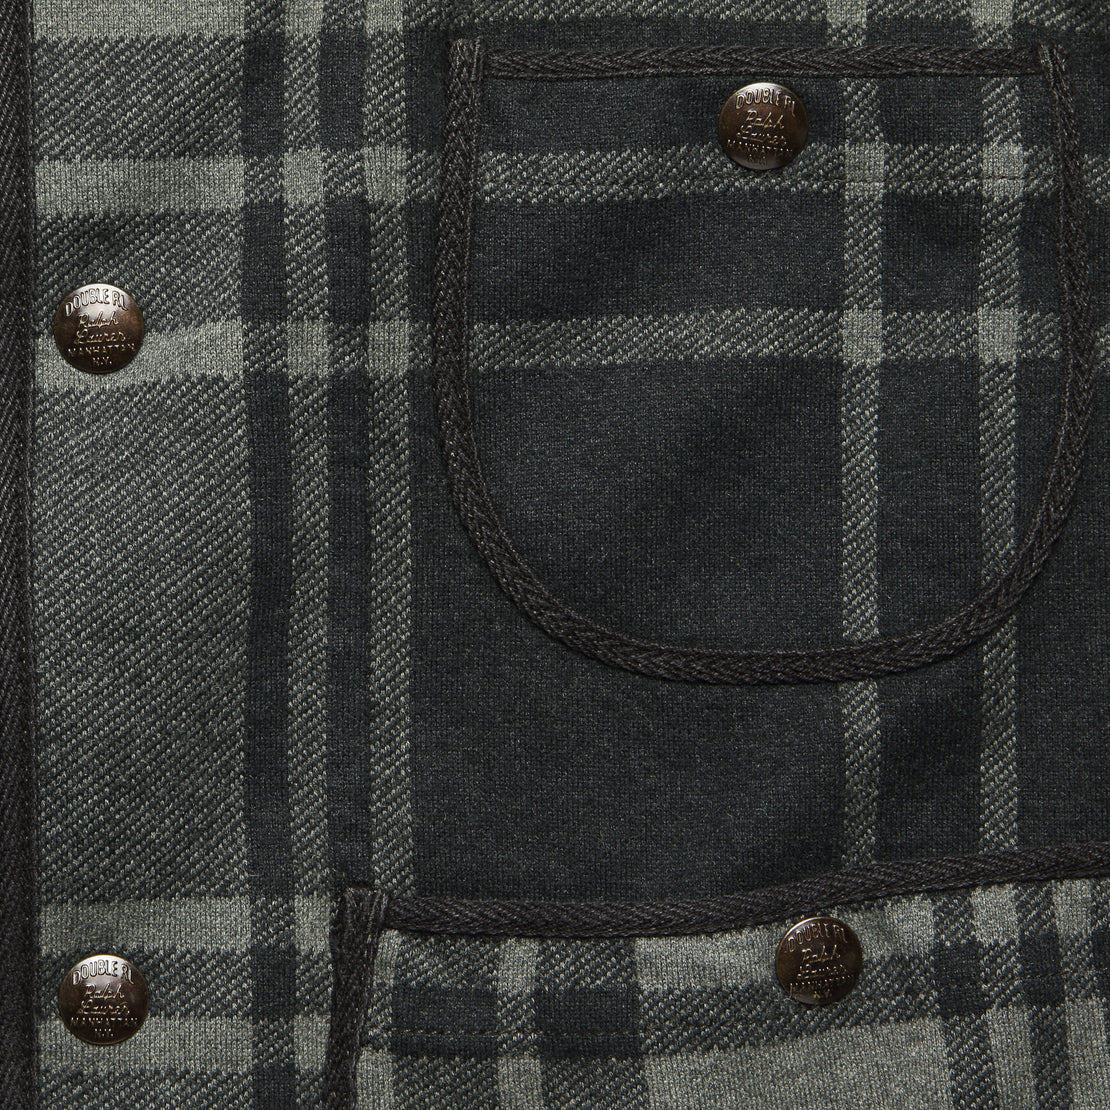 Plaid Knit Jacquard Jacket - Black/Charcoal